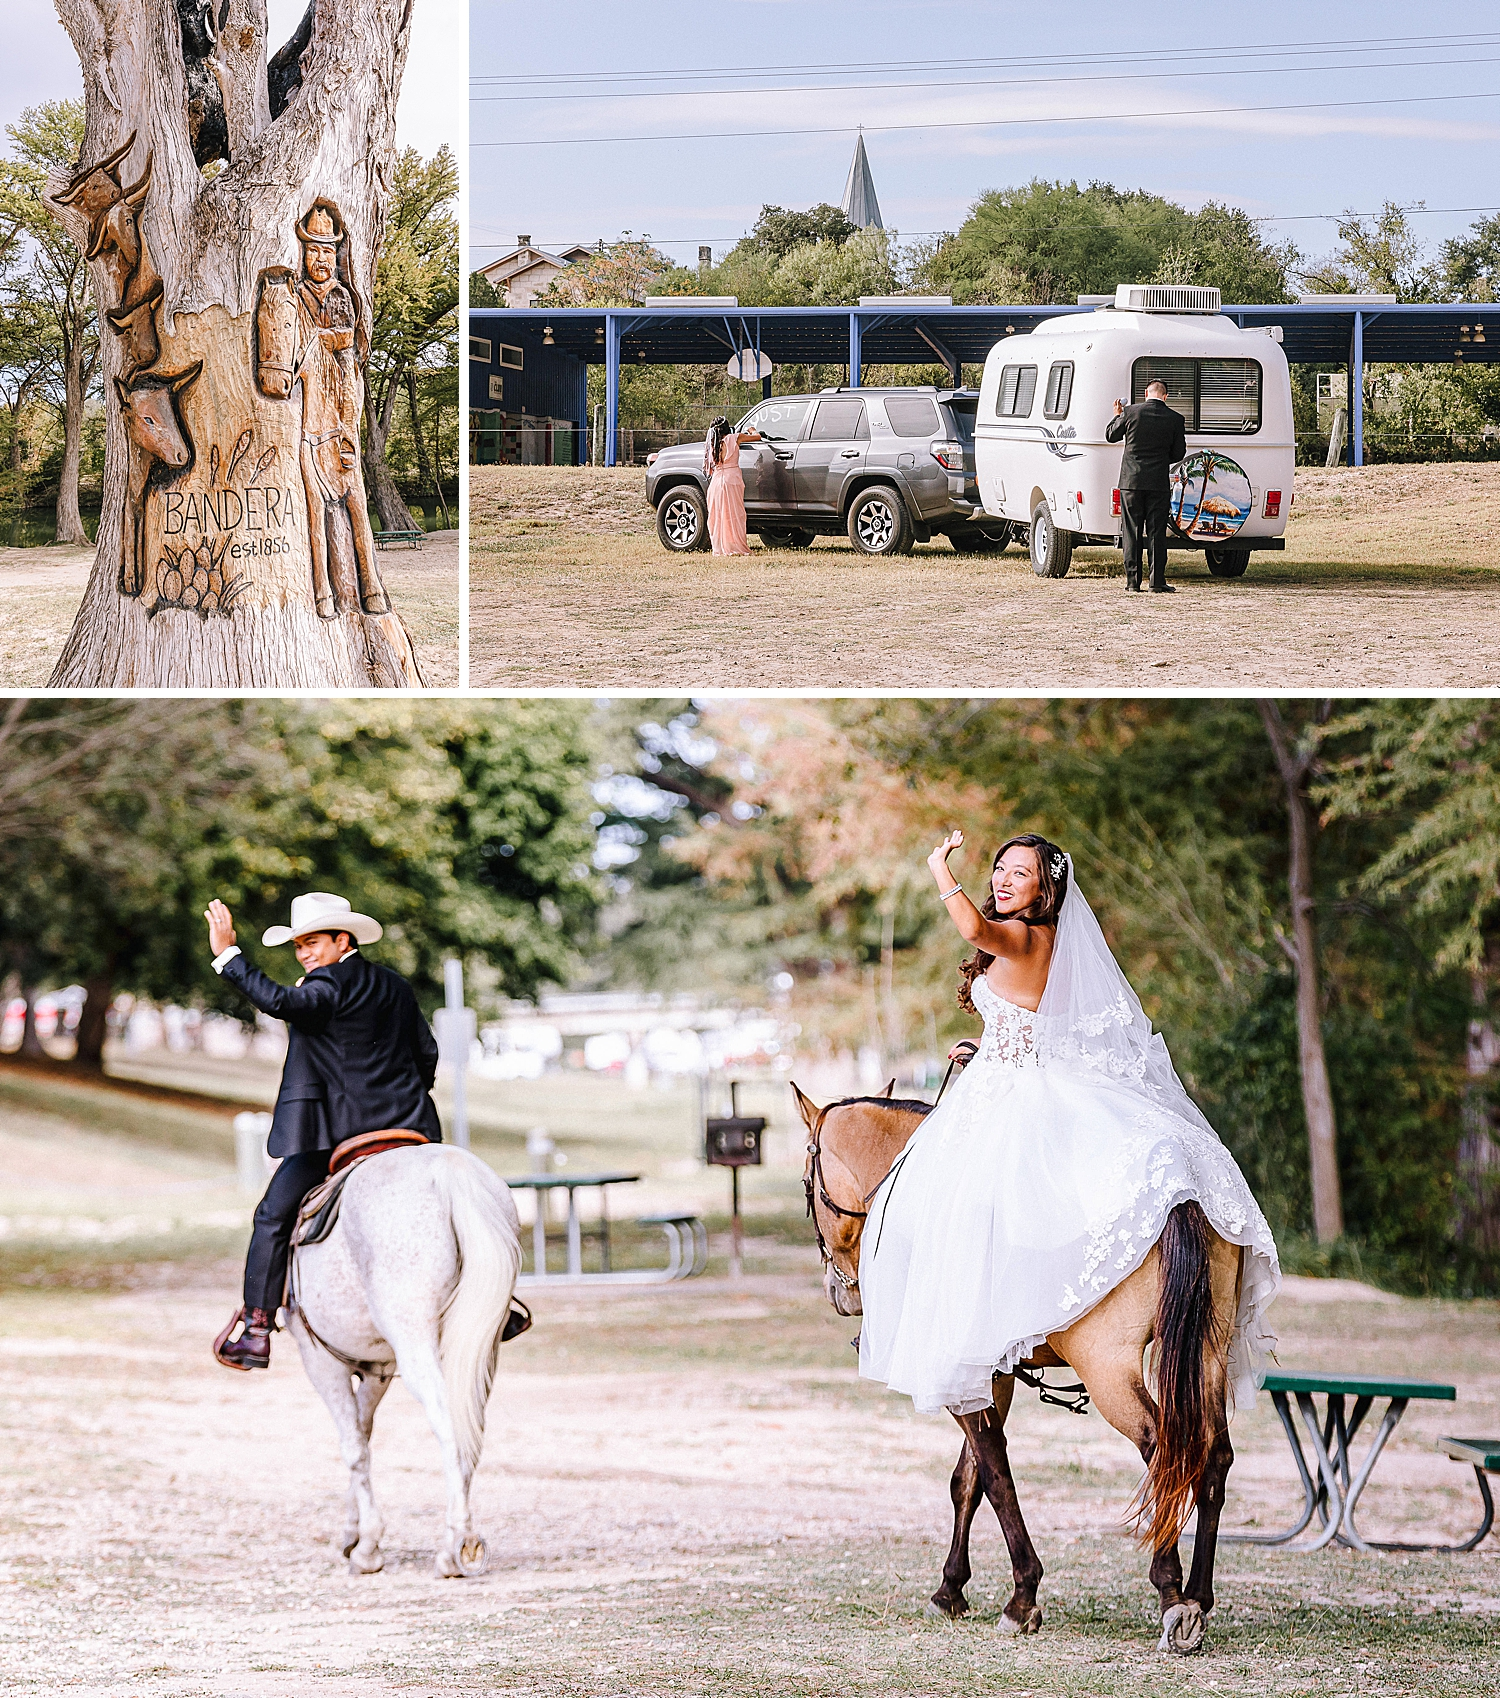 Bandera-Texas-Wedding-Photographer-Bride-Groom-on-Horses-Carly-Barton-Photography_0057.jpg